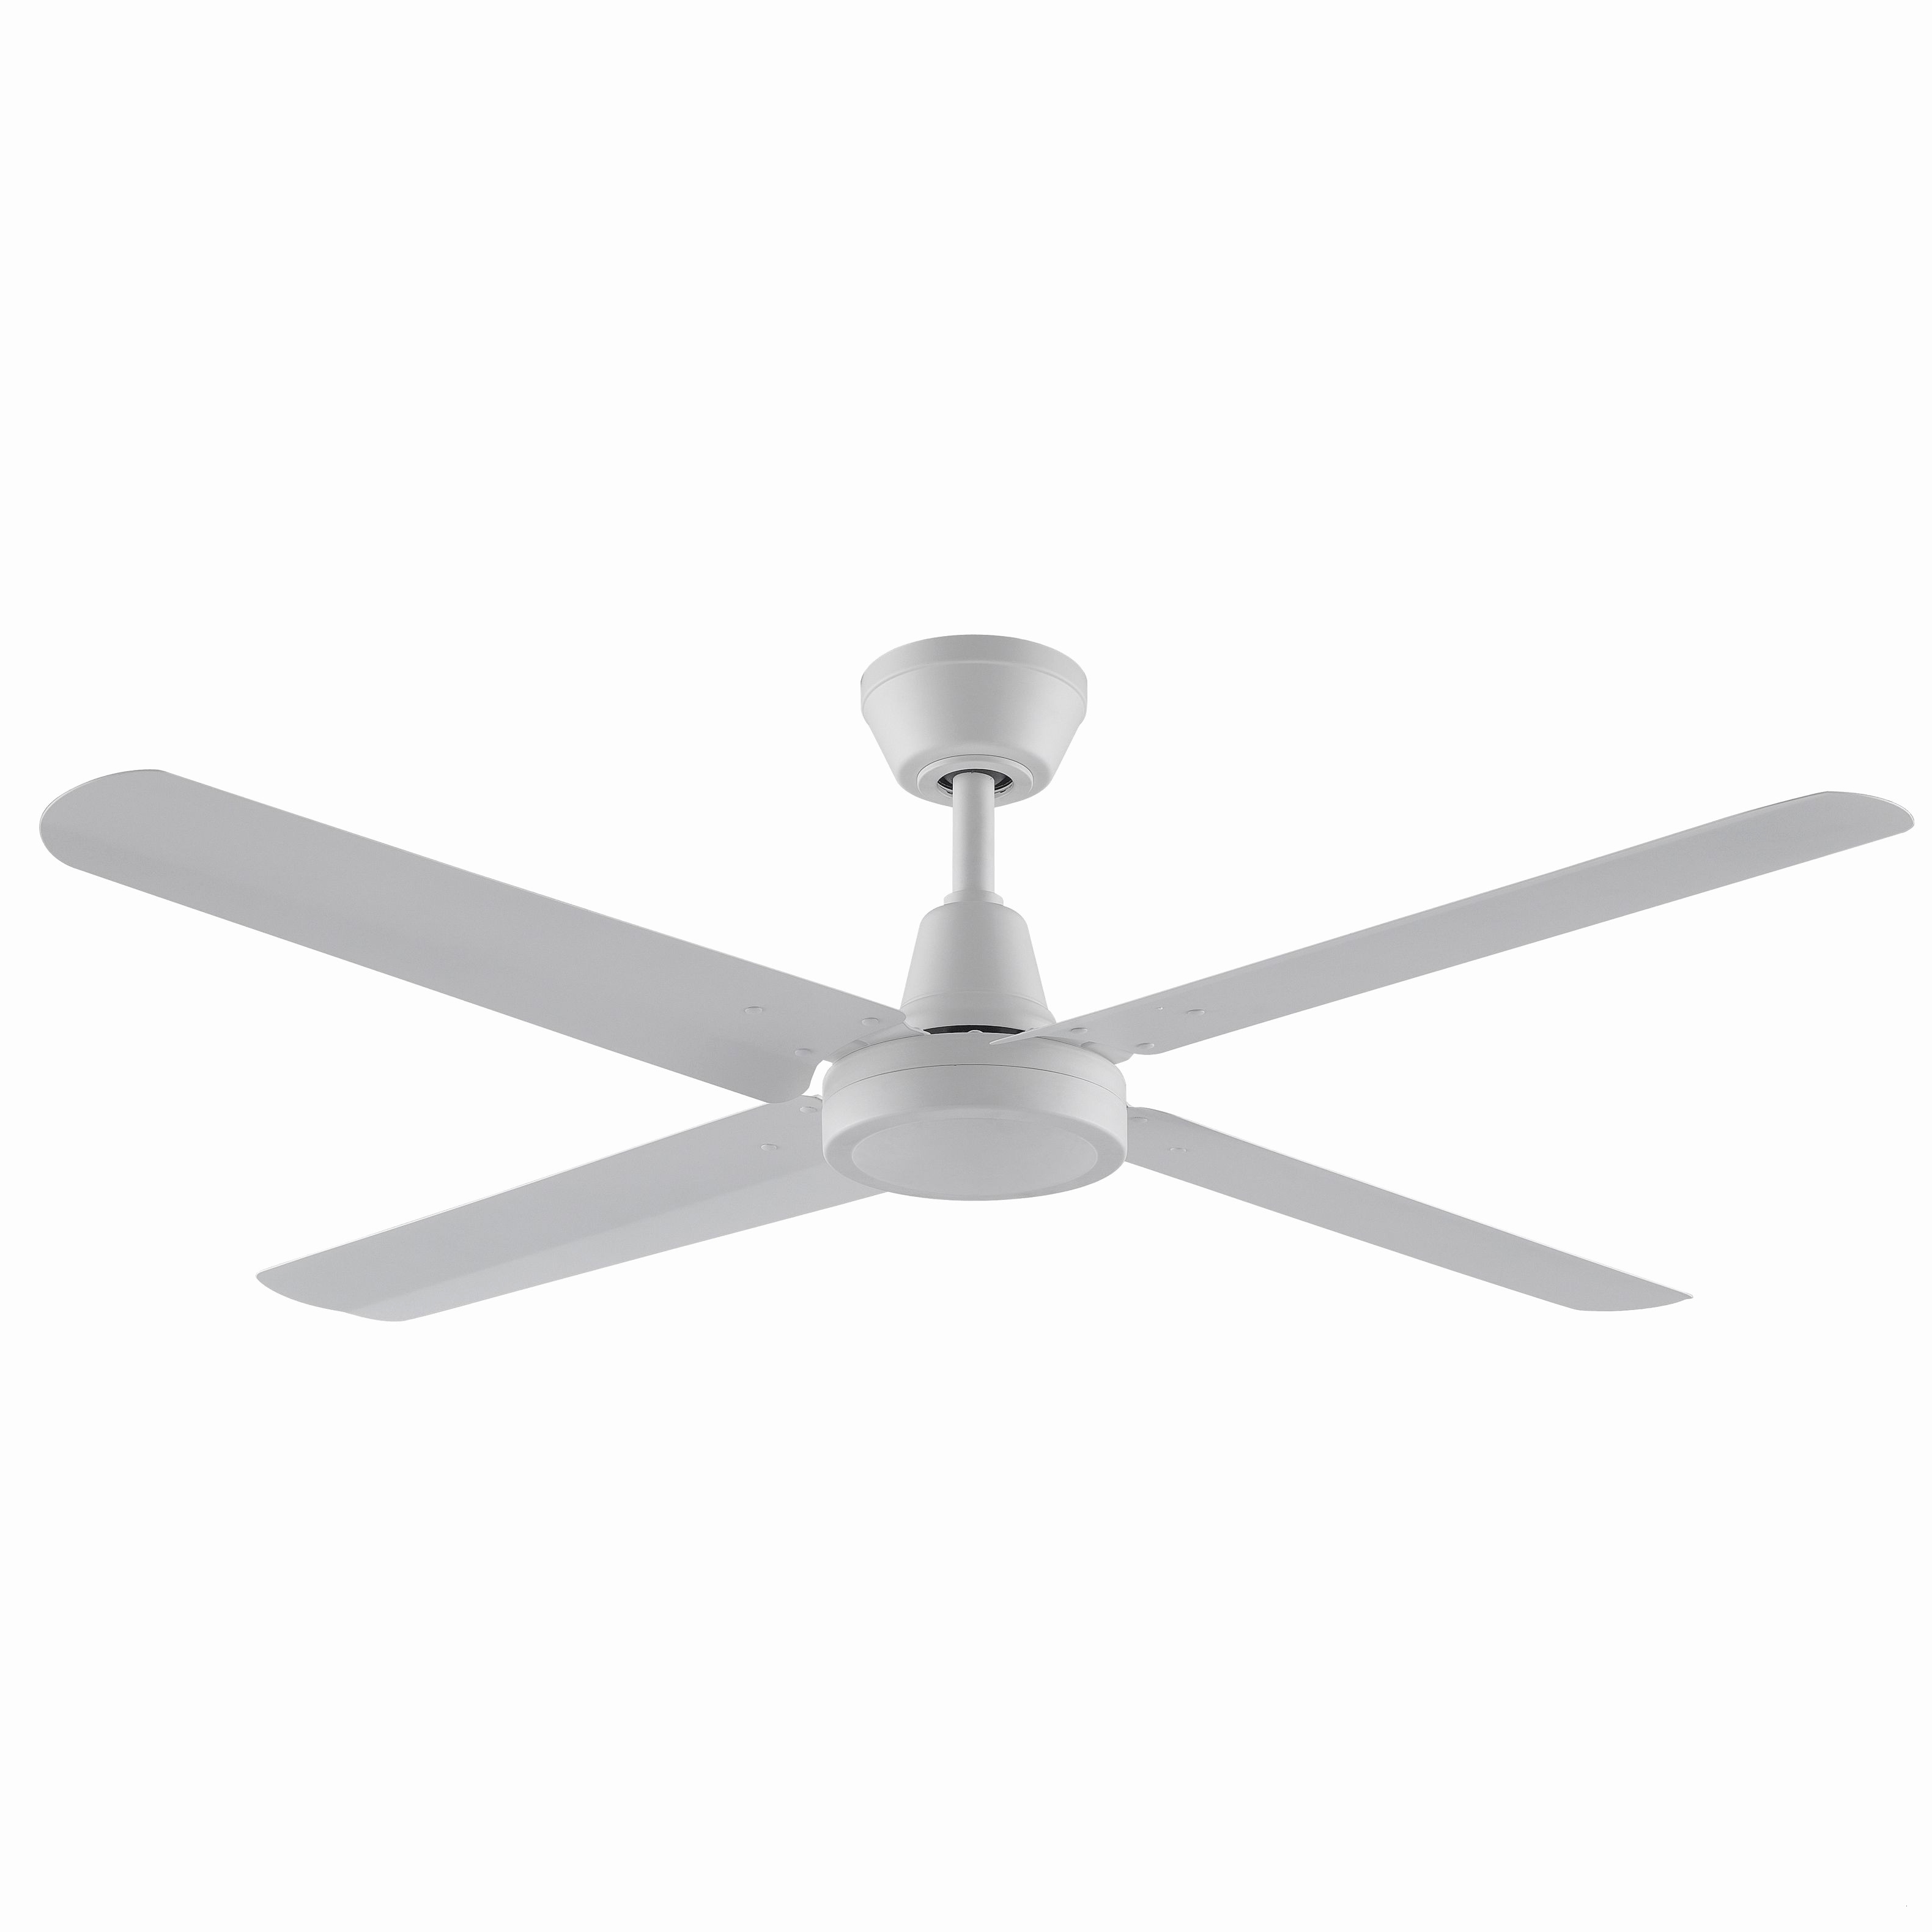 Lowes Outdoor Ceiling Fans With Lights Elegant Lowes Outdoor Ceiling Pertaining To Popular Elegant Outdoor Ceiling Fans (View 18 of 20)